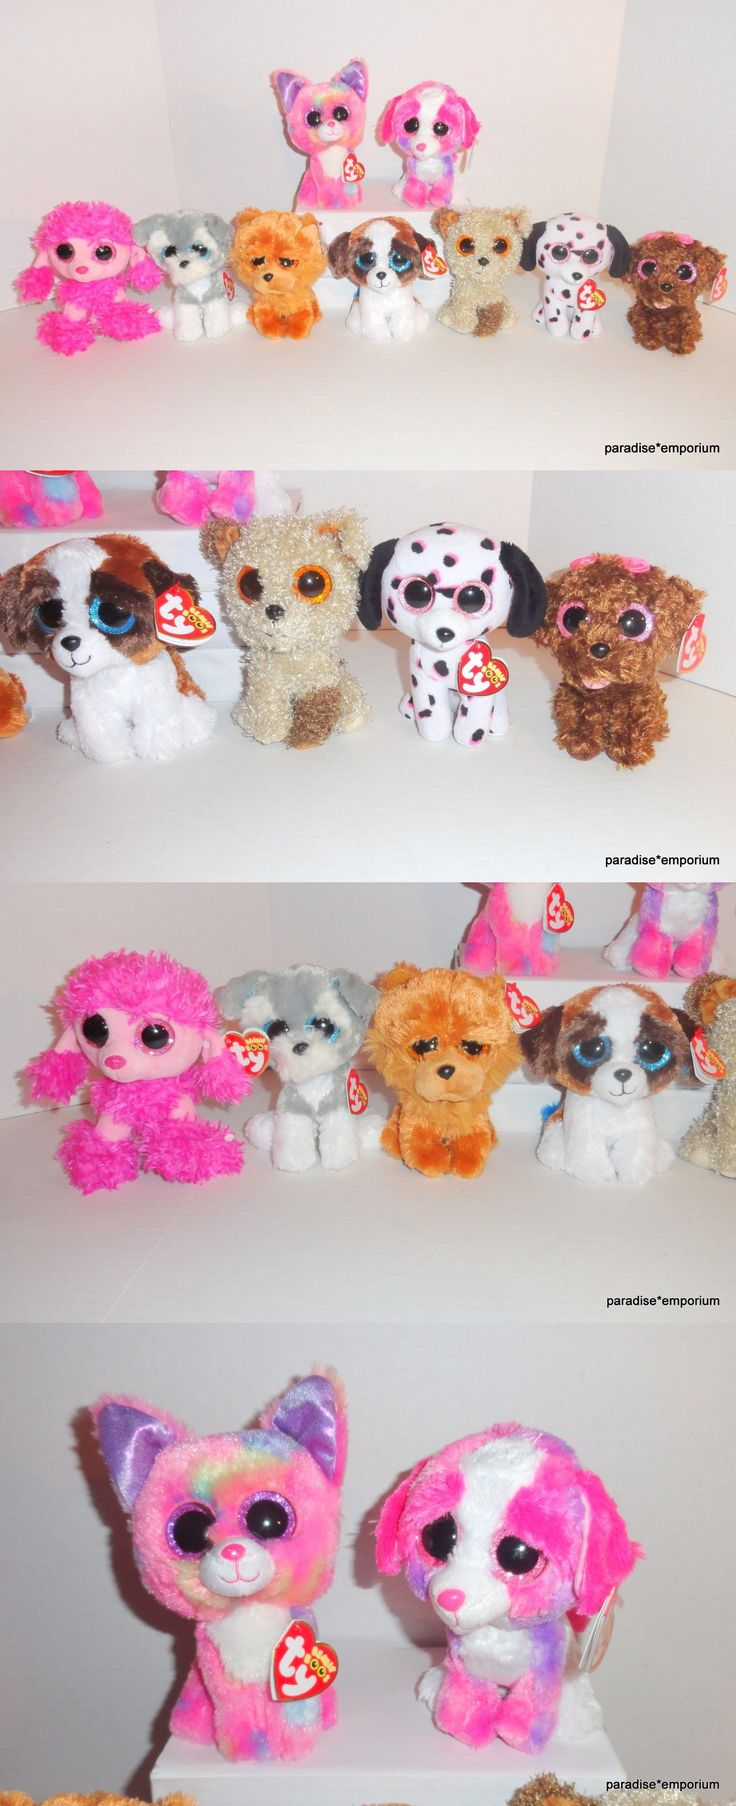 Other Ty Beanbag Plush 1037: New Ty Beanie Boos Dog Plush Set Lot Duke Cancun Sherbert Georgia Barley P57 -> BUY IT NOW ONLY: $48.95 on eBay!